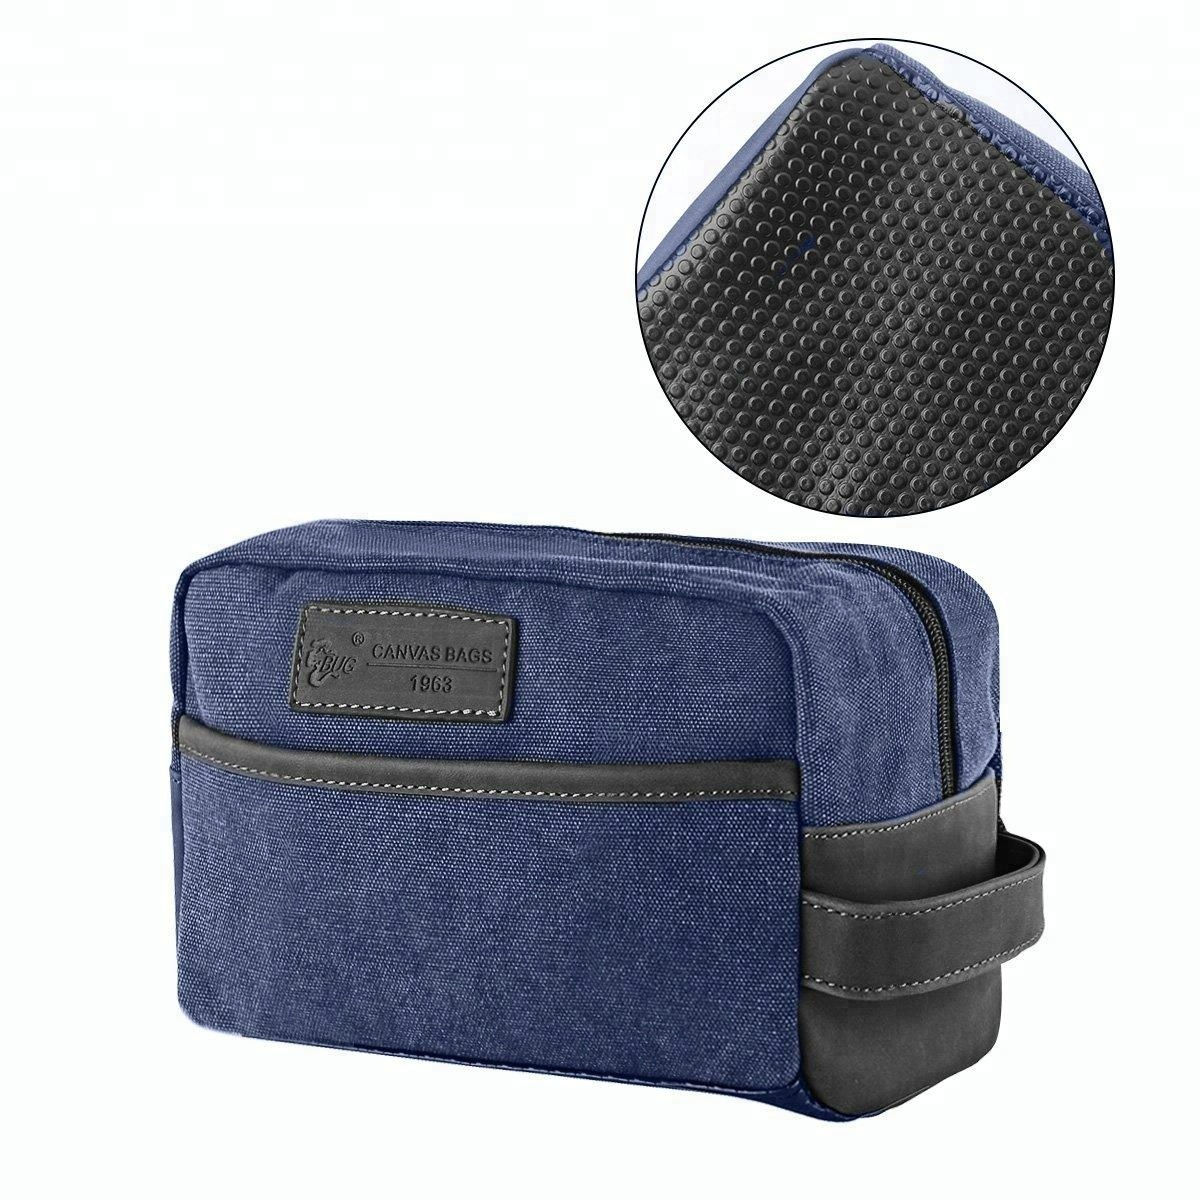 2019 Classic Vintage Canvas Wash Shower Organizer Waterproof Shaving Travel Toiletry Bag Men